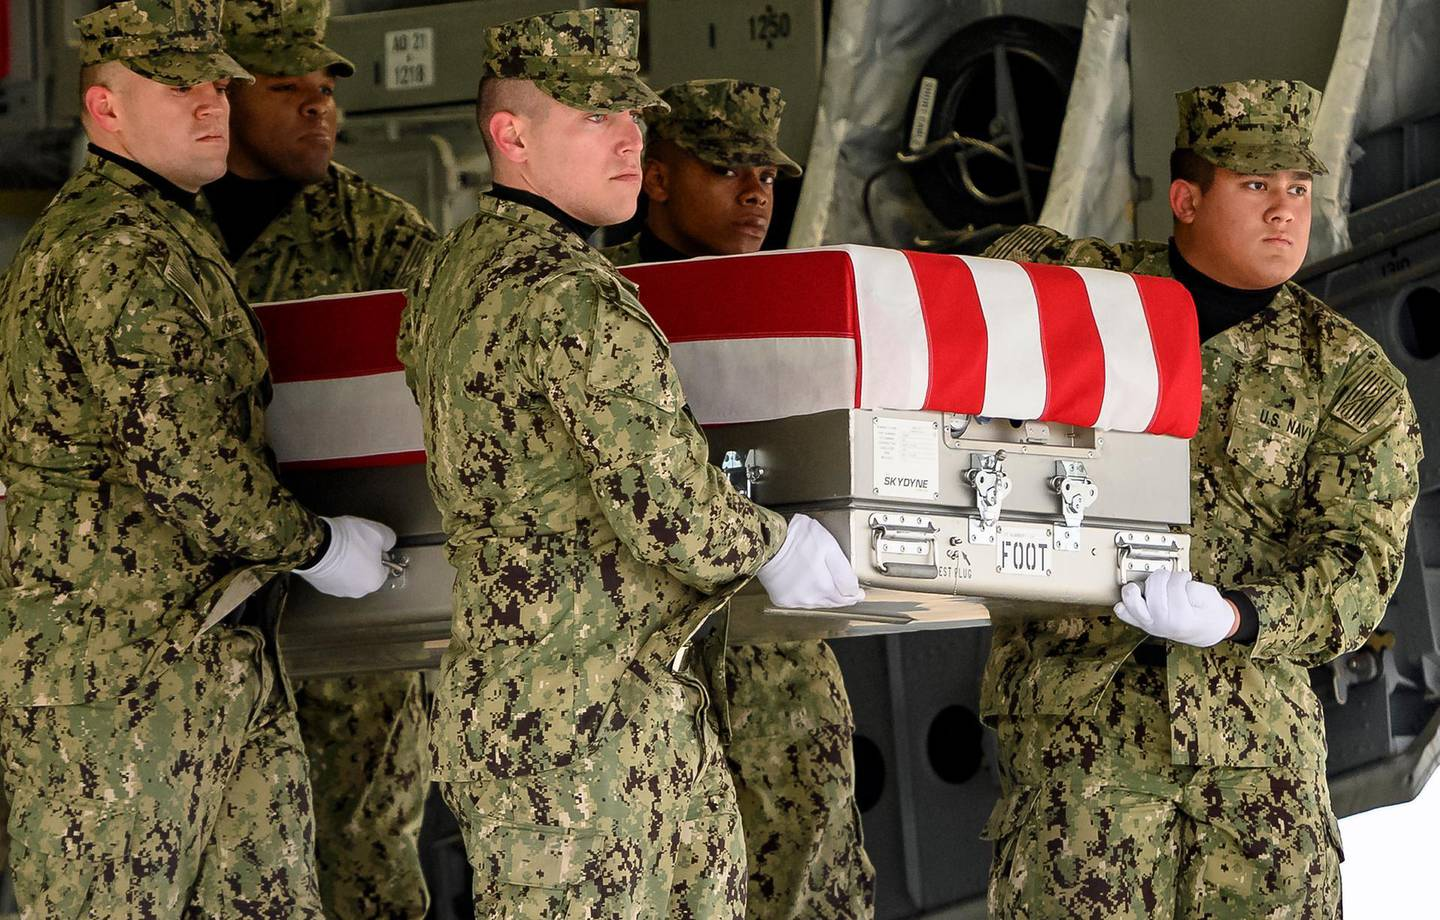 epa07301553 A US Navy carry team carries the transfer case of former Navy SEAL and Department of Defense civilian Scott A. Wirtz to the transfer vehicle during the dignified transfer at Dover Air Force Base in Dover, Delaware, USA, on 19 January 2019. Wirtz was one of four Americans killed during a suicide bombing in the northern Syrian city of Manbij.  EPA/Scott Serio